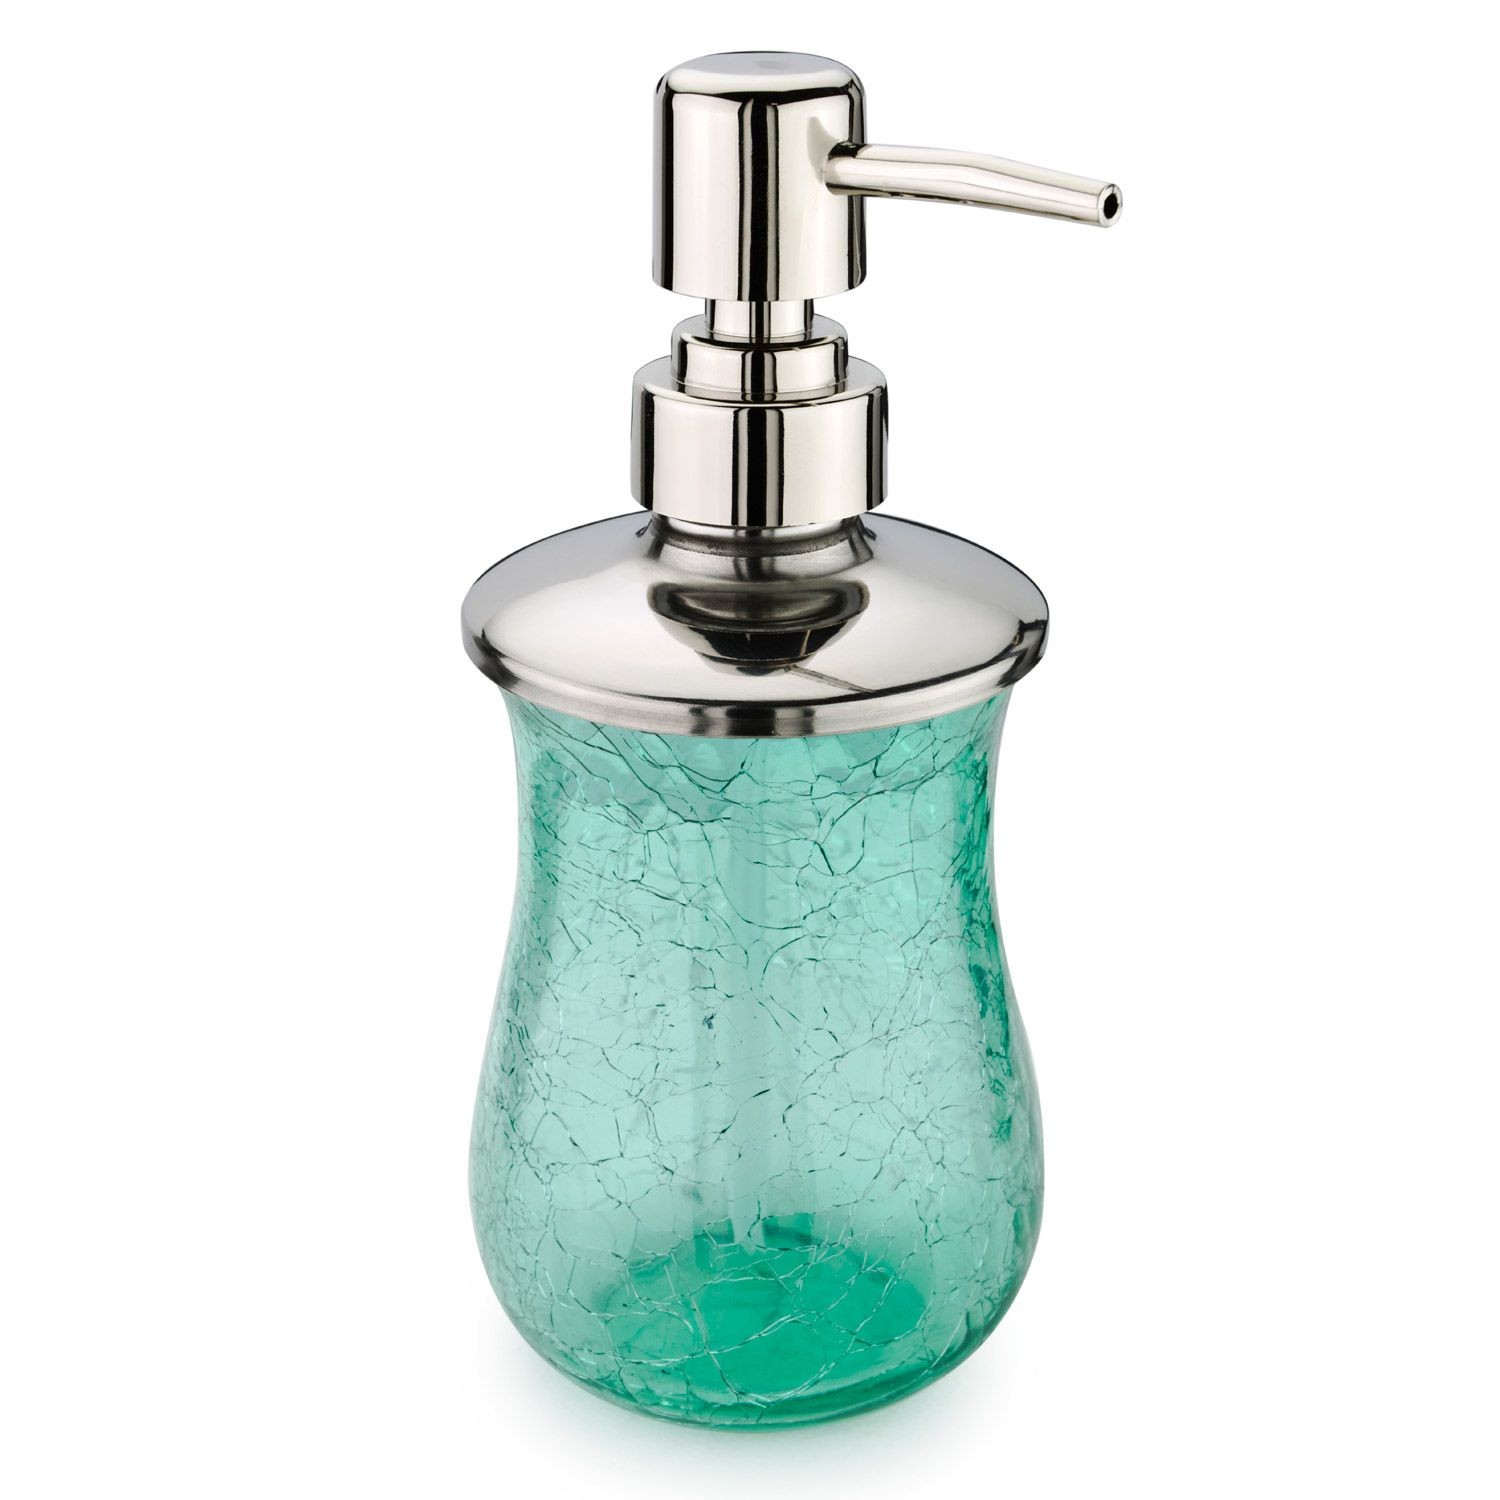 Buy the Hanima Green Crackle Glass Bathroom Lotion Bottle at The ...